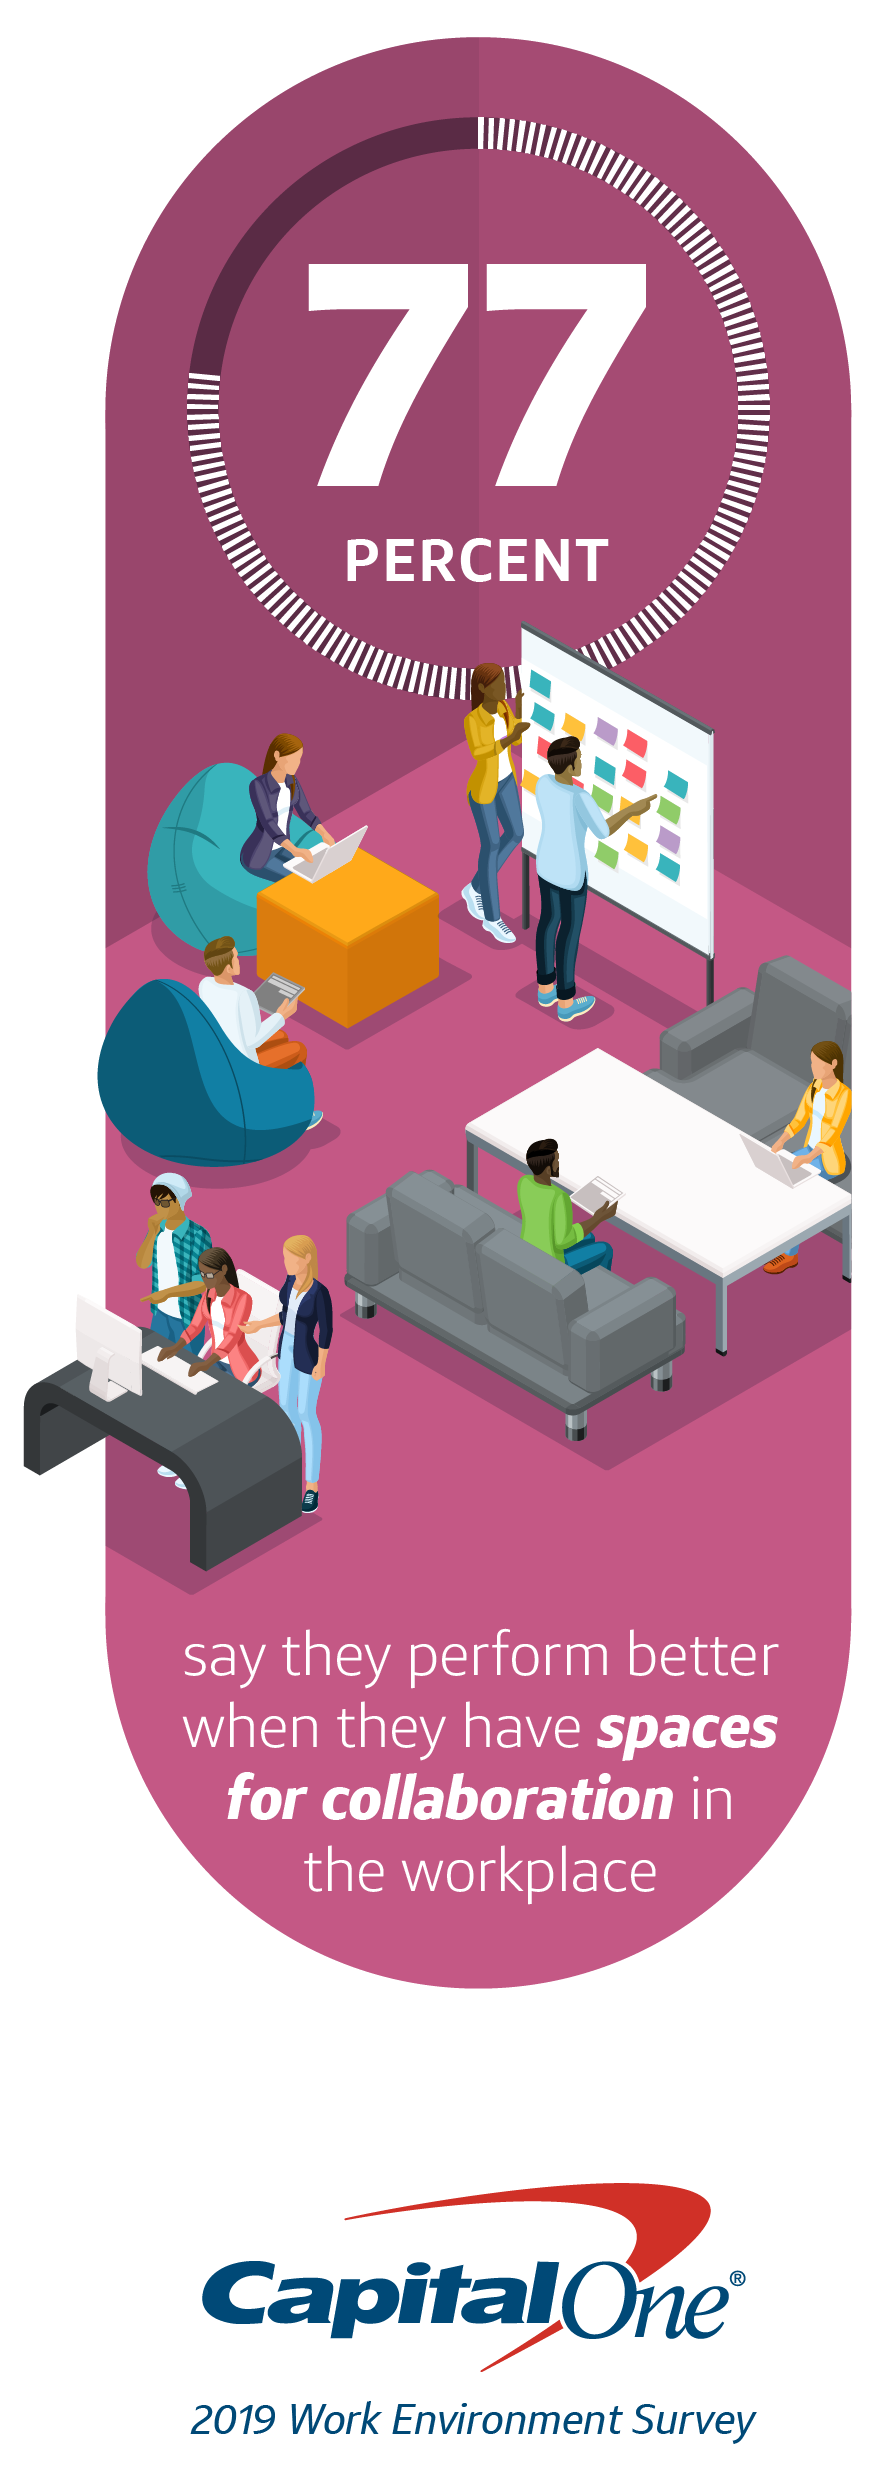 Capital One infographic on workplace design for collaboration spaces